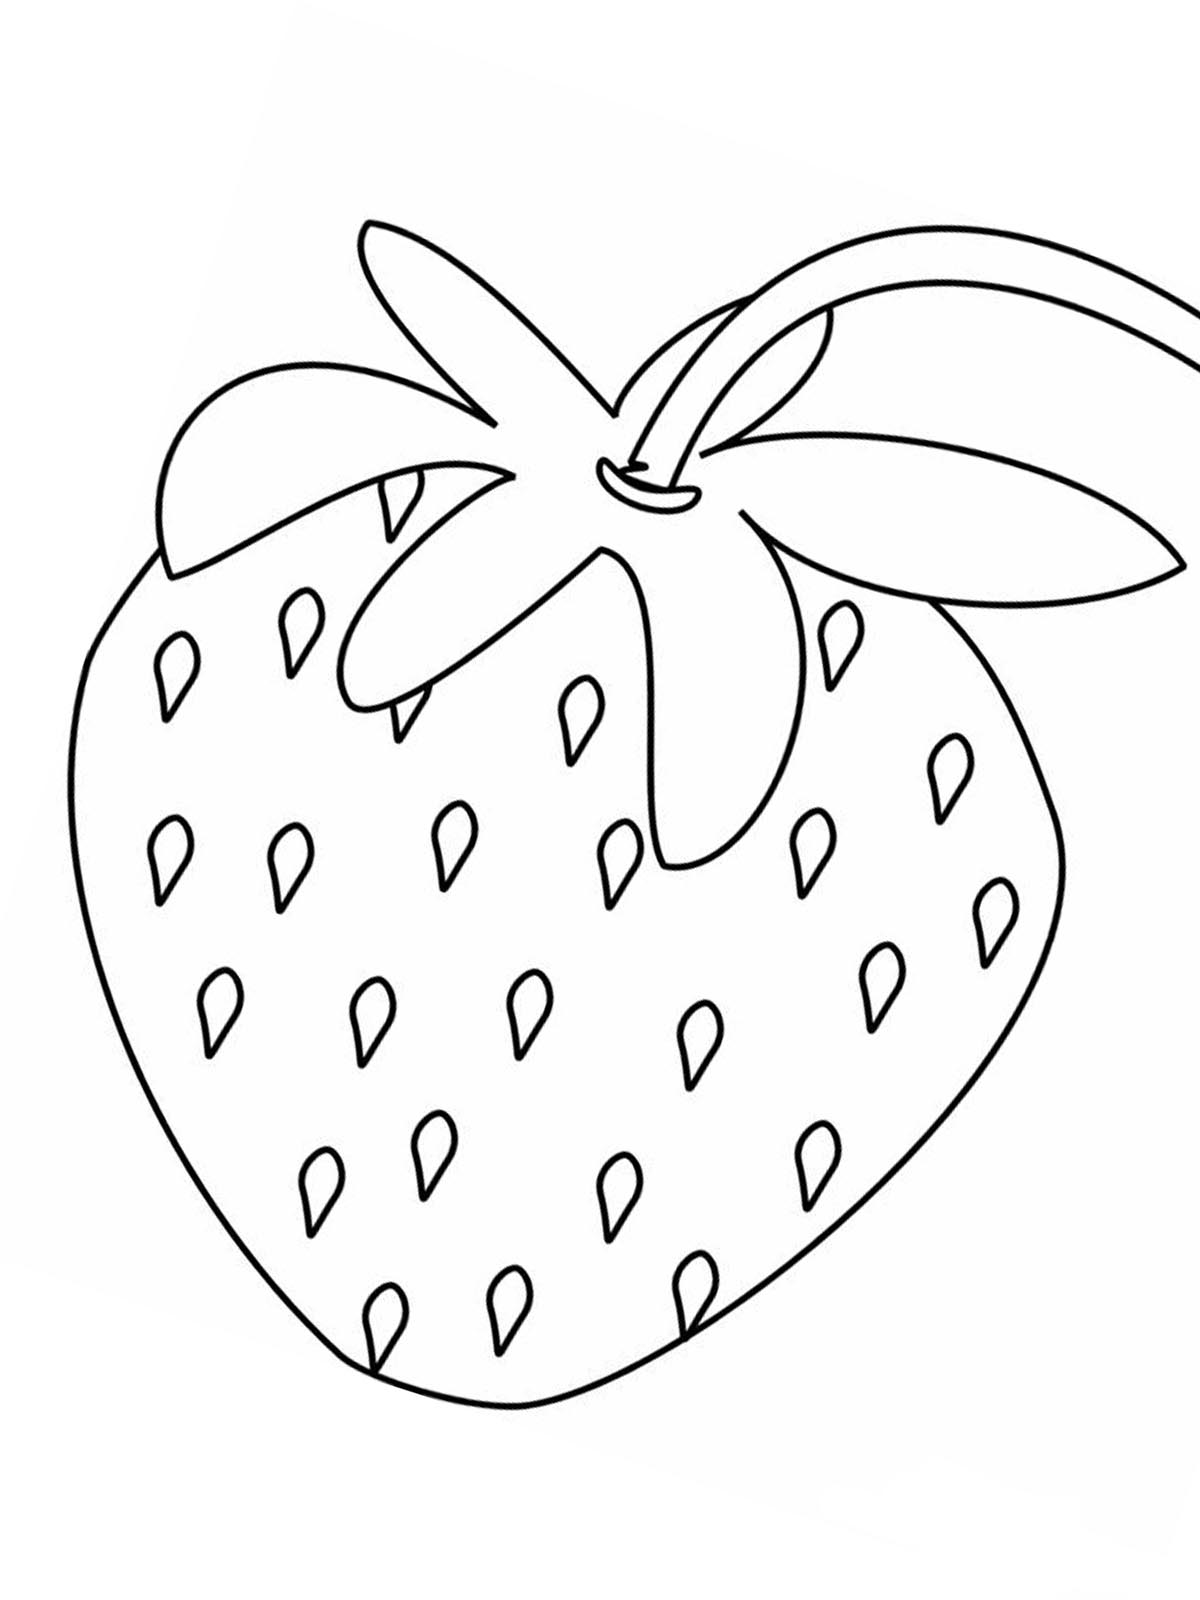 coloring pages for kids online free printable color by number coloring pages best coloring online pages for kids